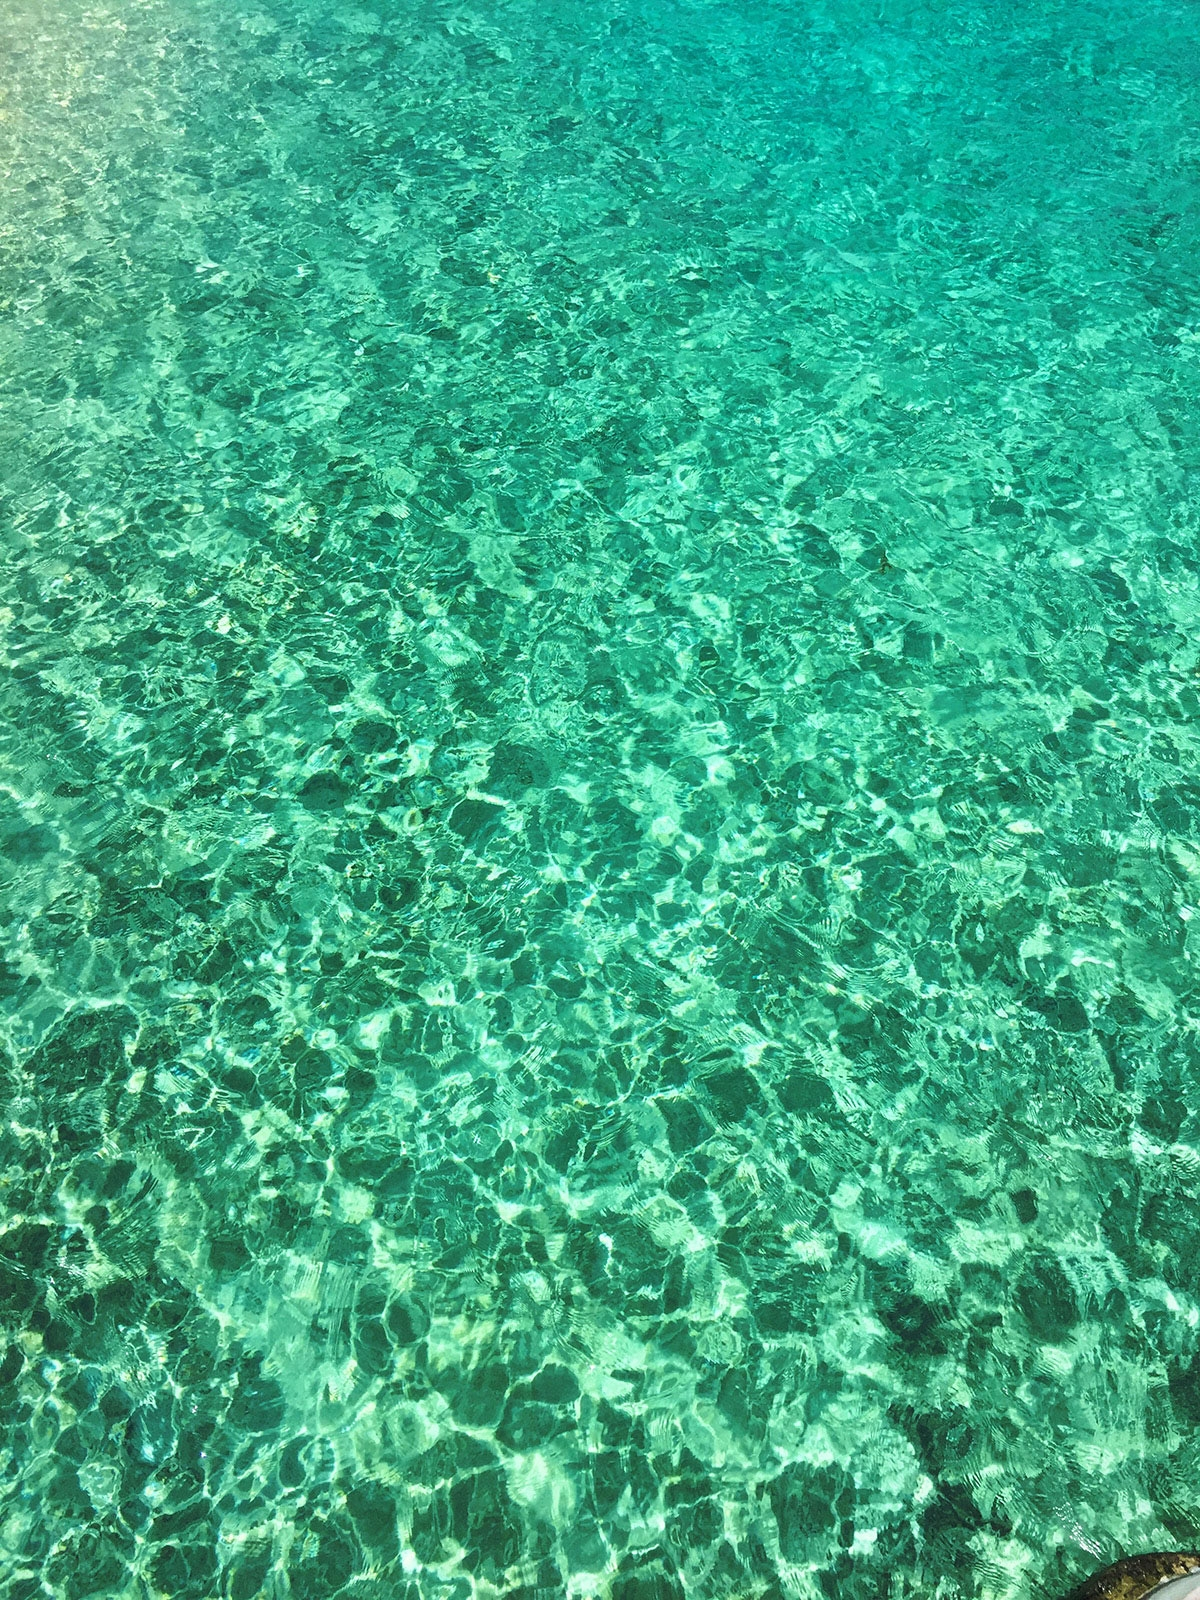 The clear turquoise water of the Bora Bora ocean